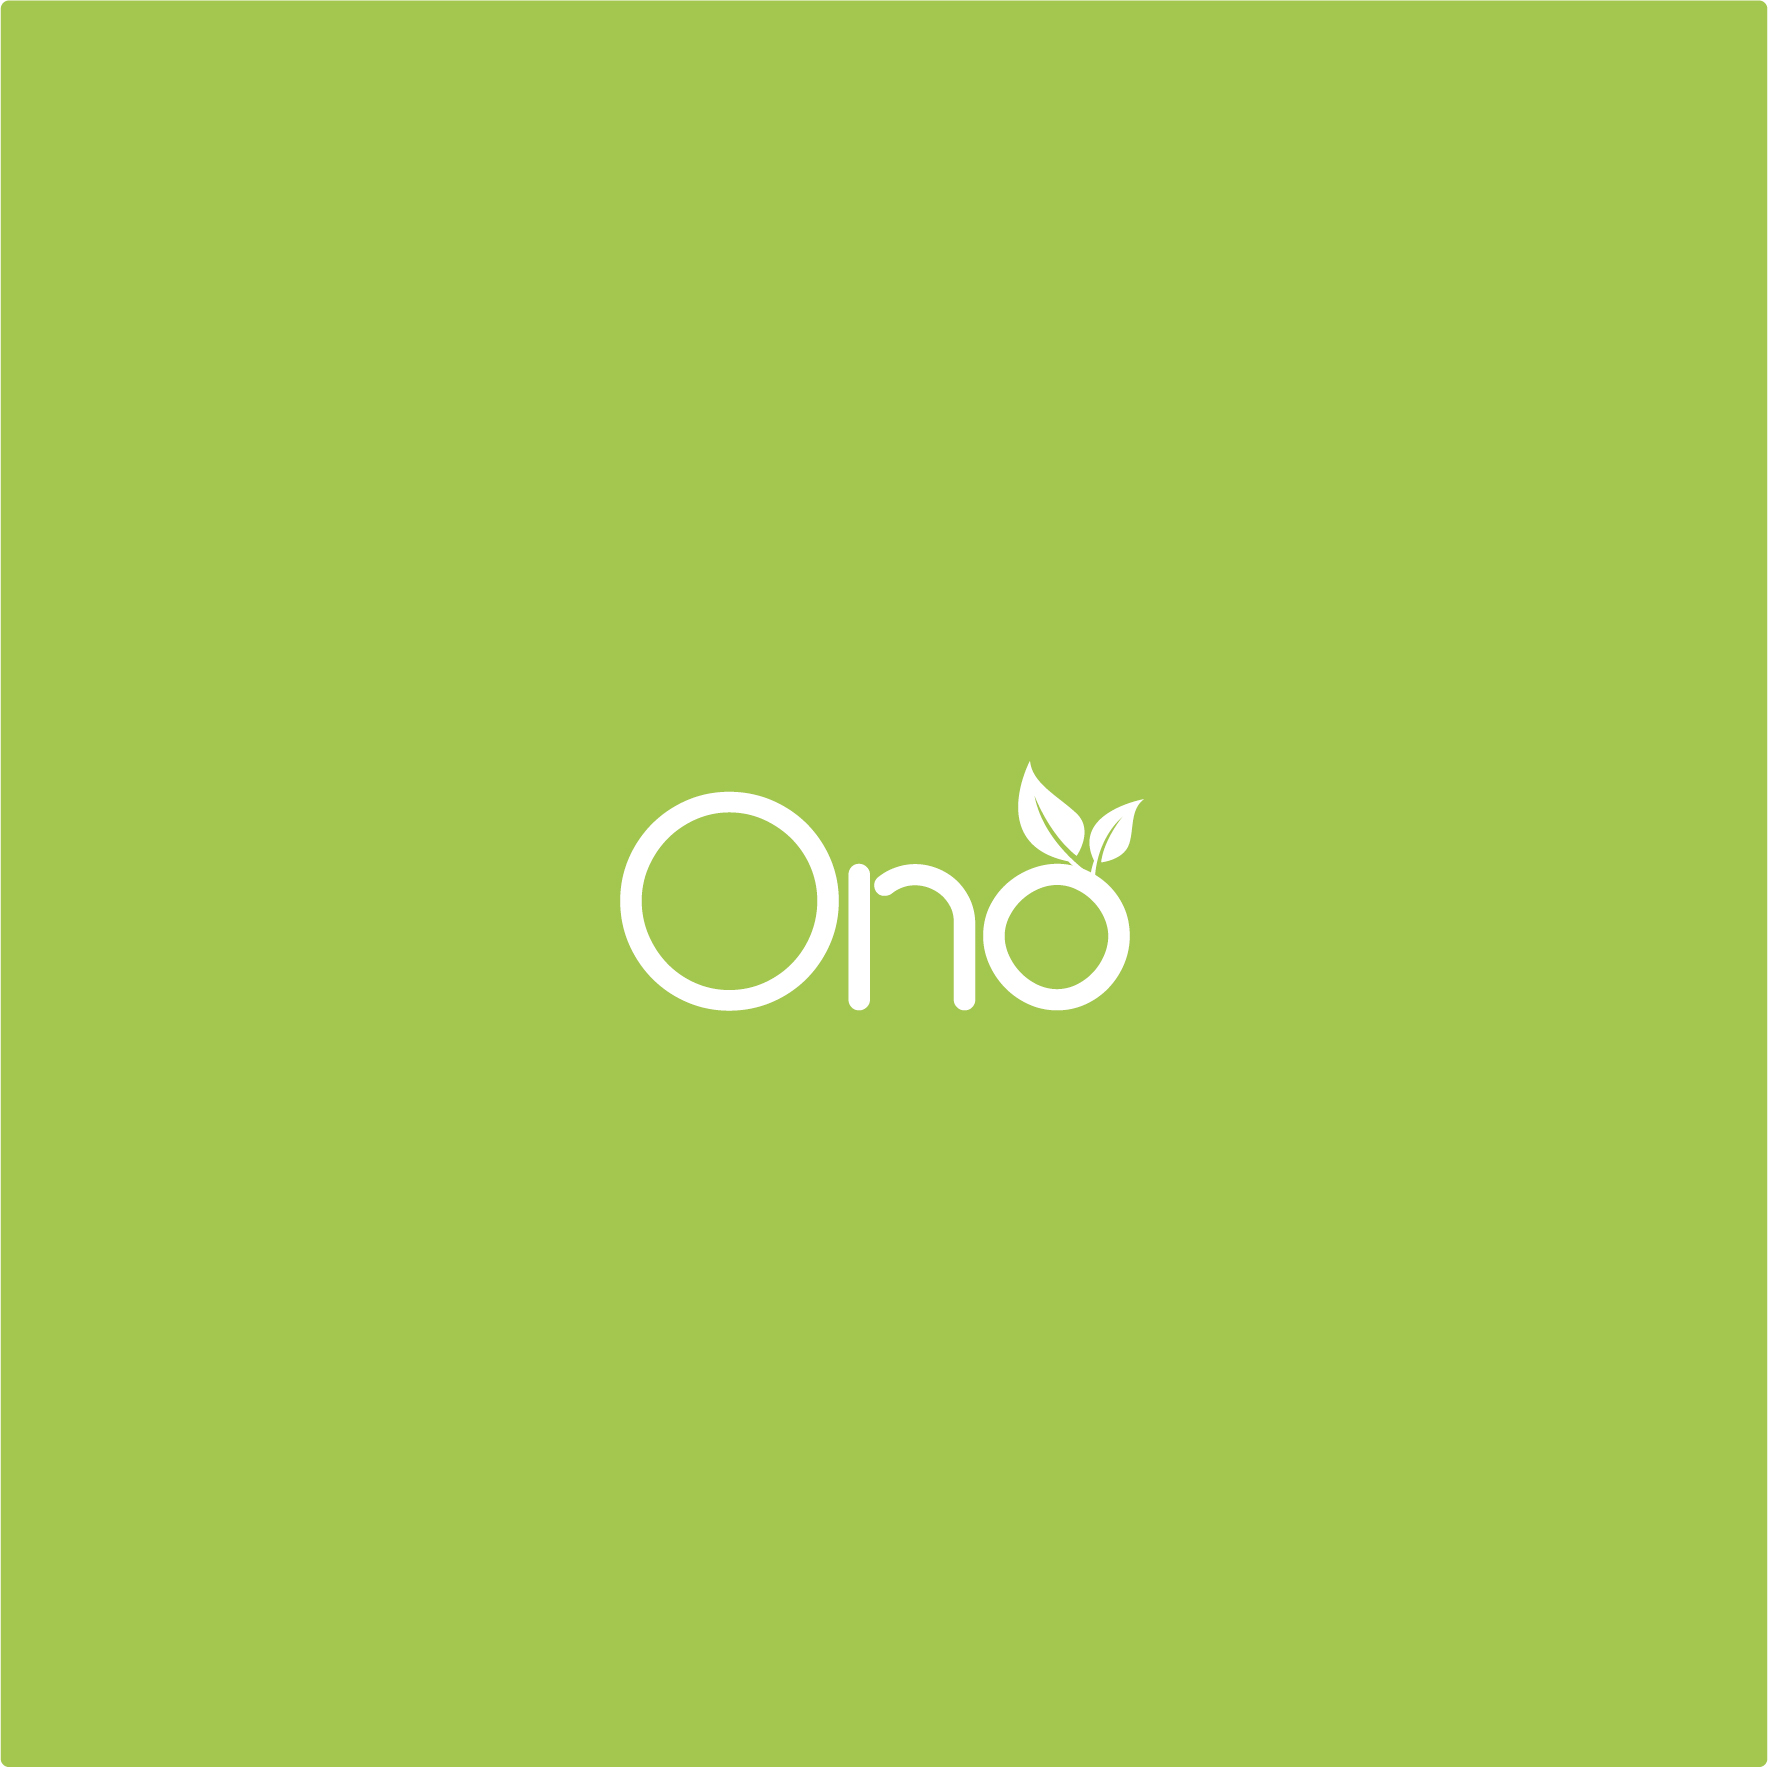 Ono by The Green Garden